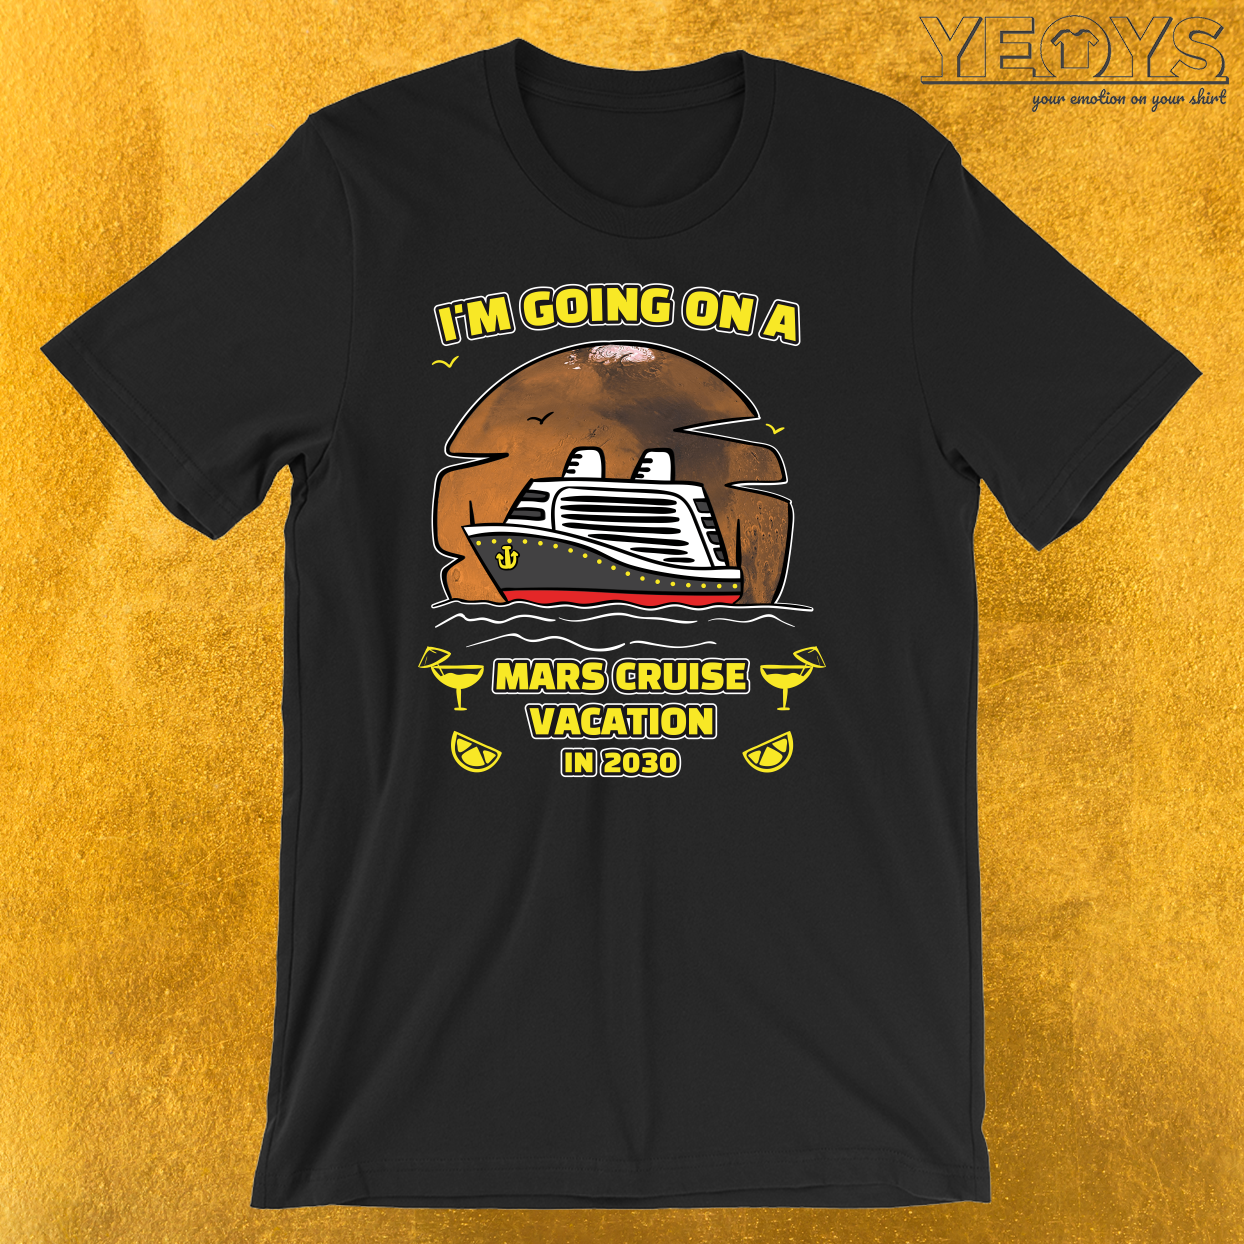 I'm Going On A Mars Cruise Vacation In 2030 T-Shirt